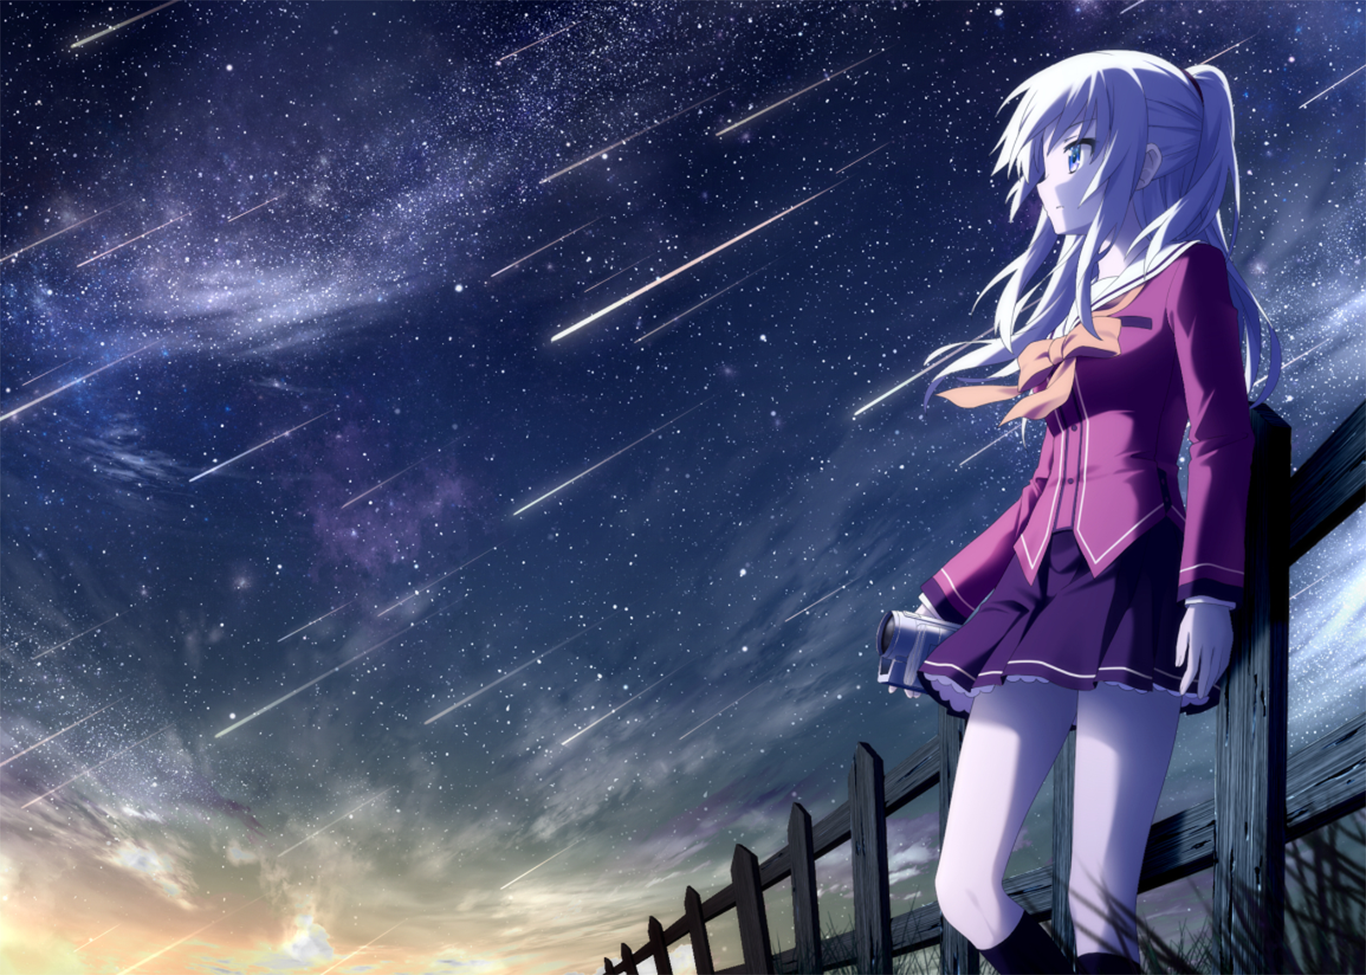 Nao Tomori Lonely Charlotte Anime girls Wallpaper HD 2015 anime